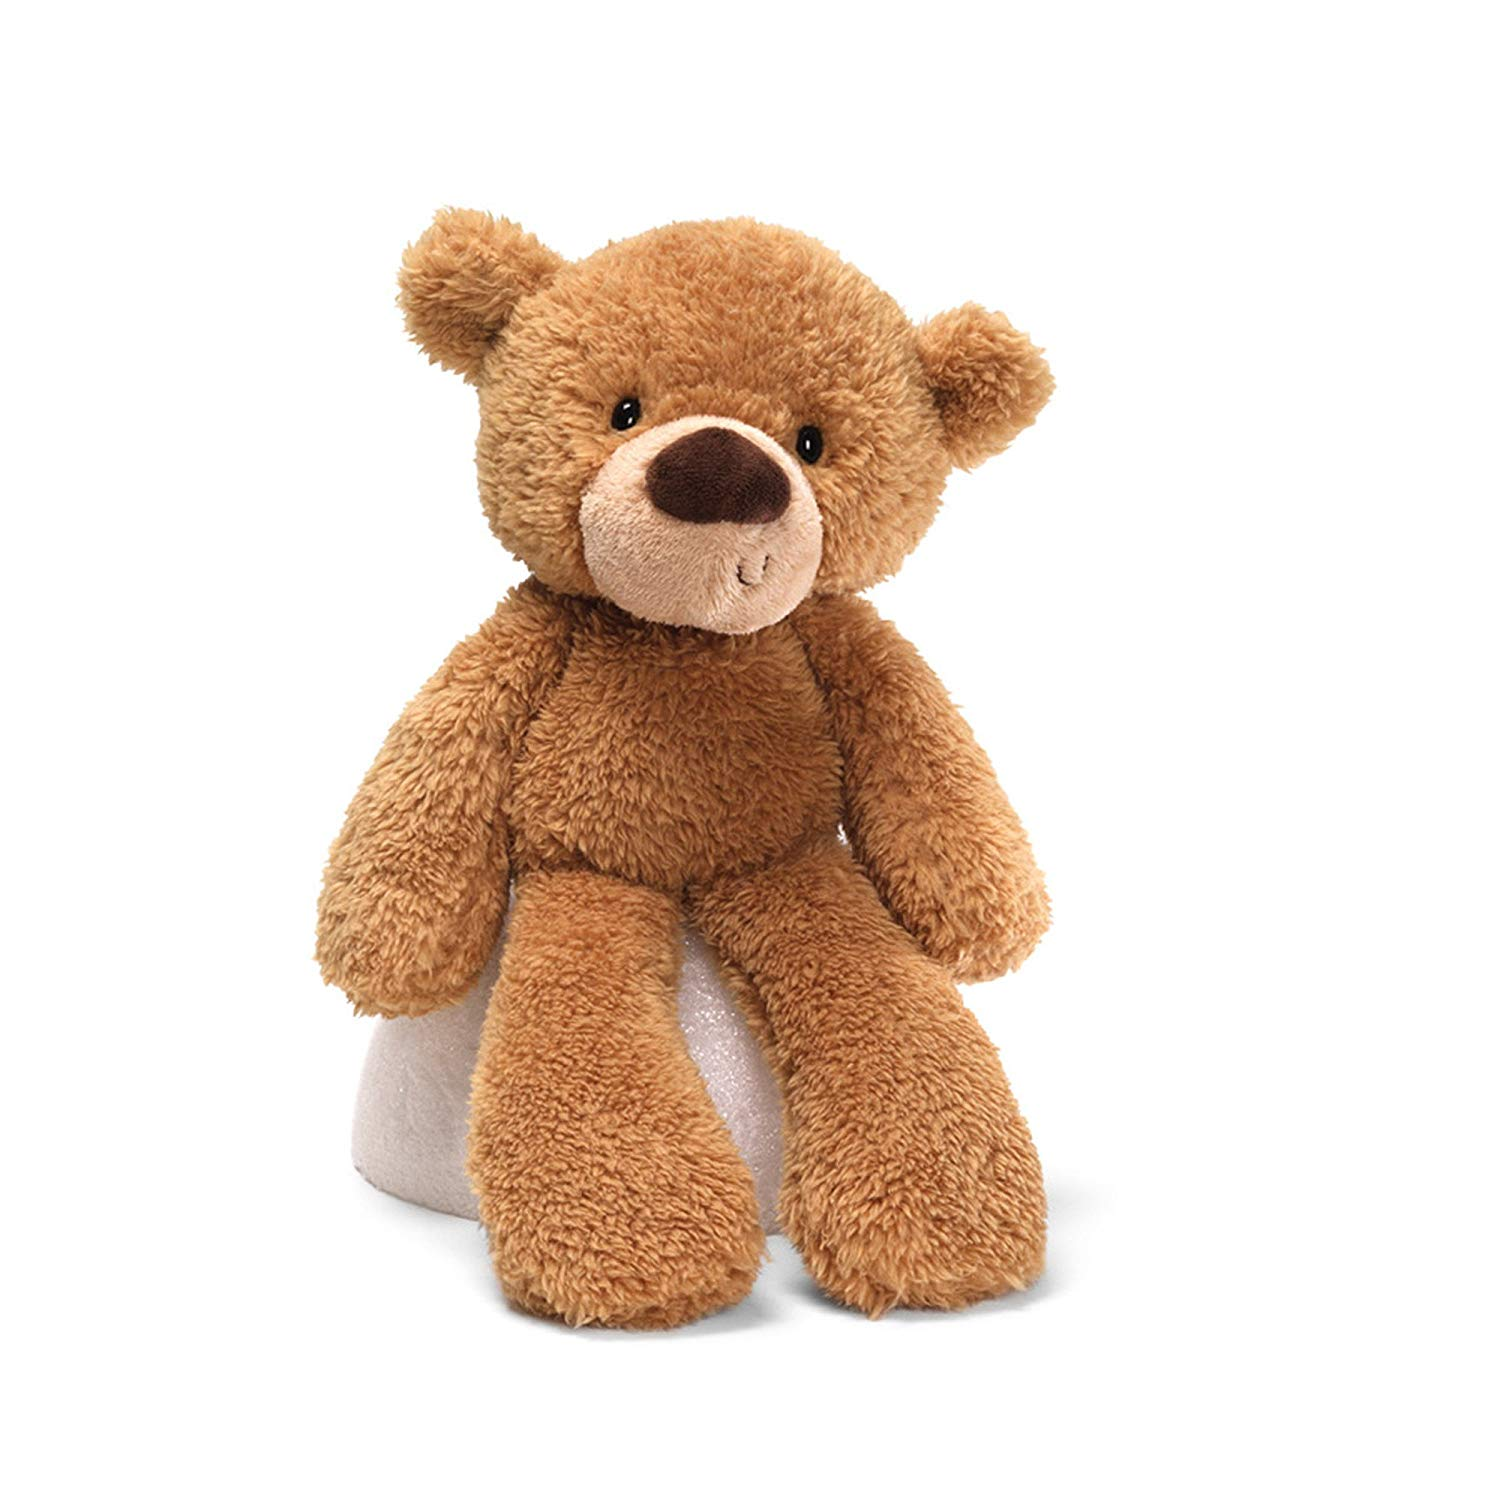 "Fuzzy Teddy Bear Stuffed Animal Plush, Beige, 13.5"", Polyester By GUND"